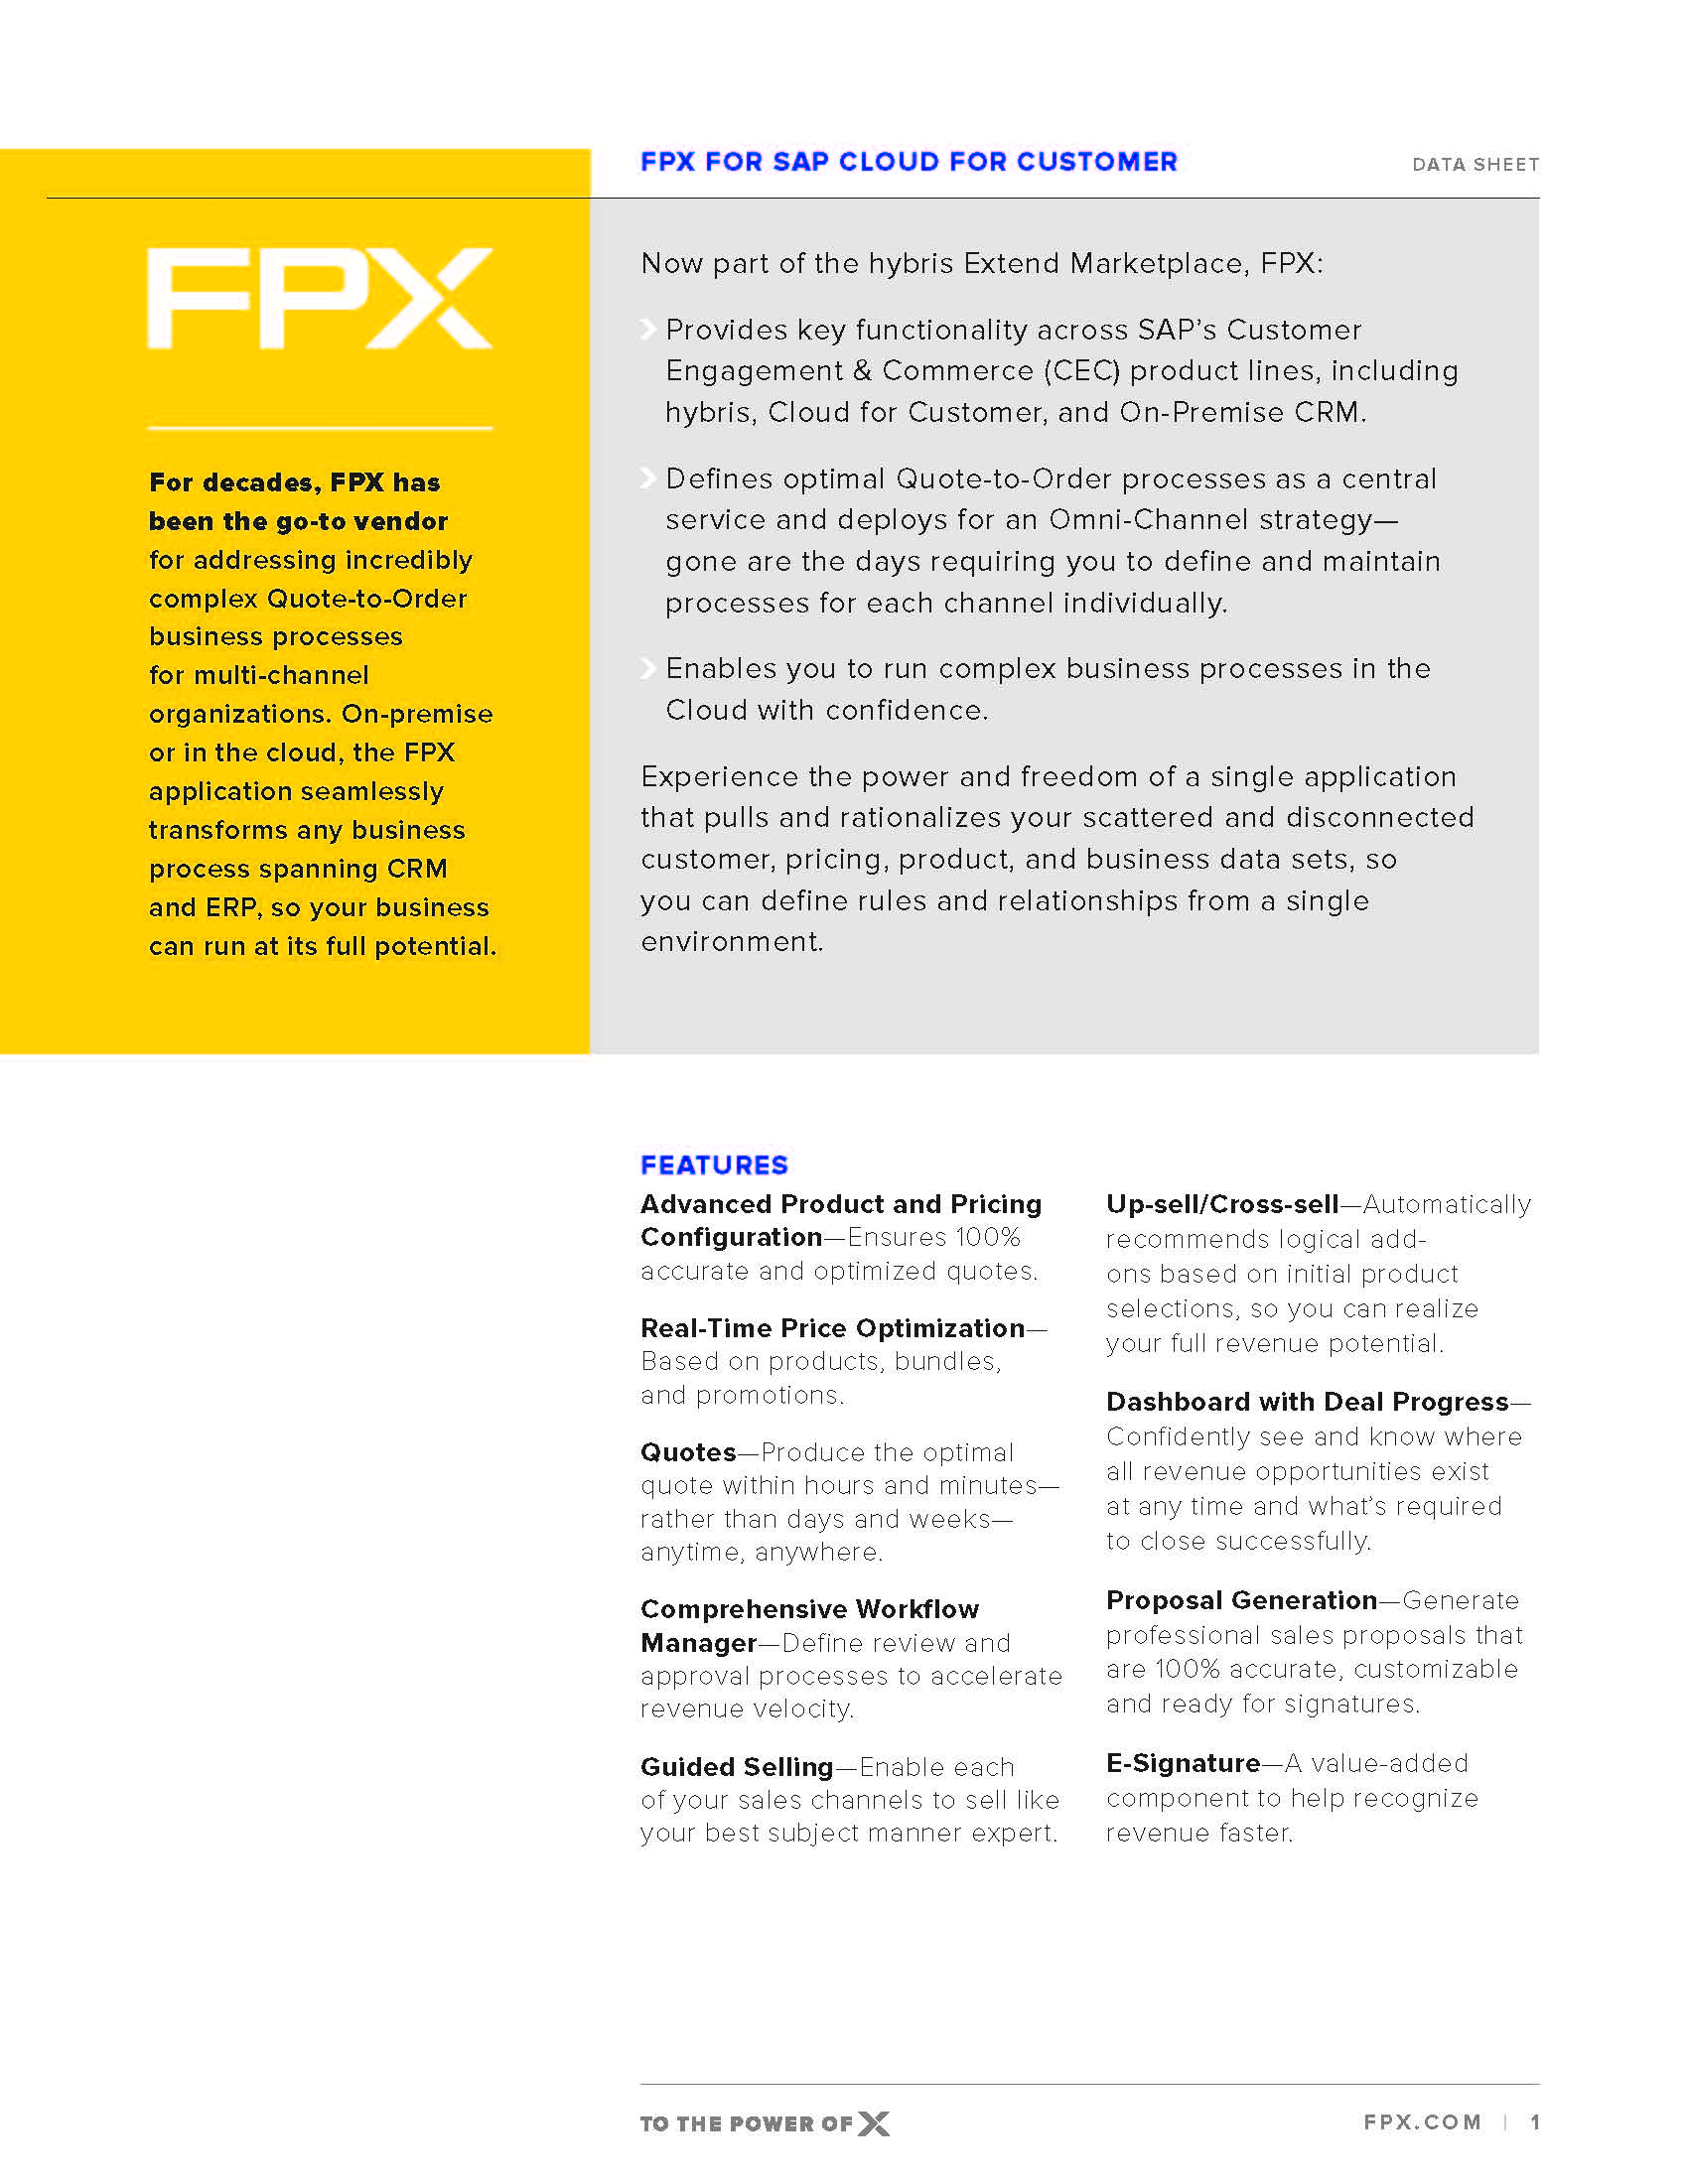 Download the FPX for SAP C4C data sheet